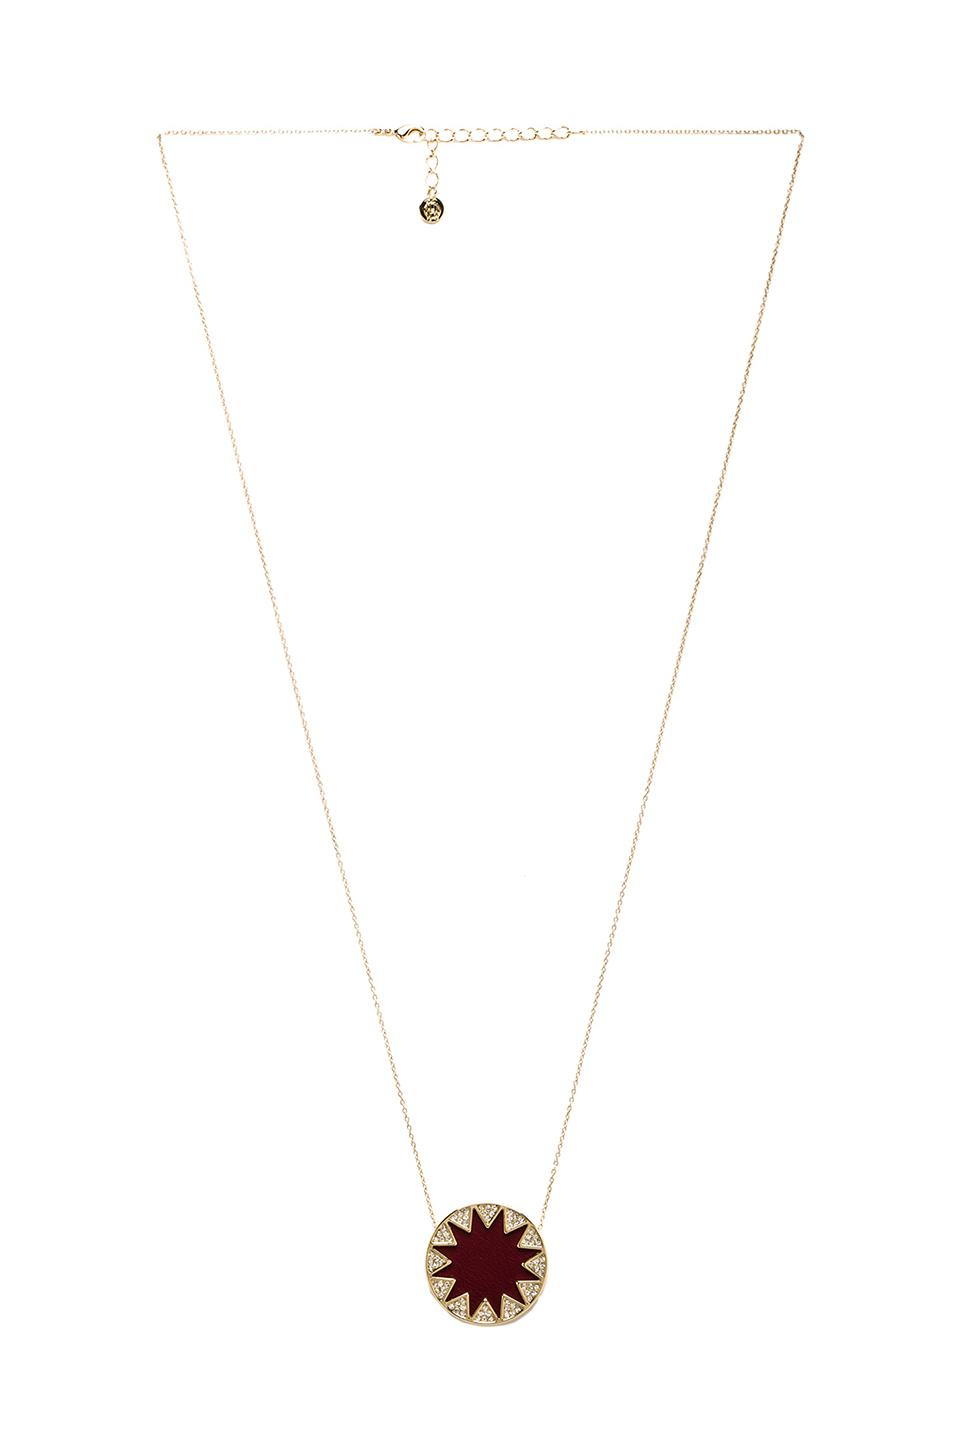 House of Harlow Medium Pave Sunburst Necklace in Gold Tone Cranberry